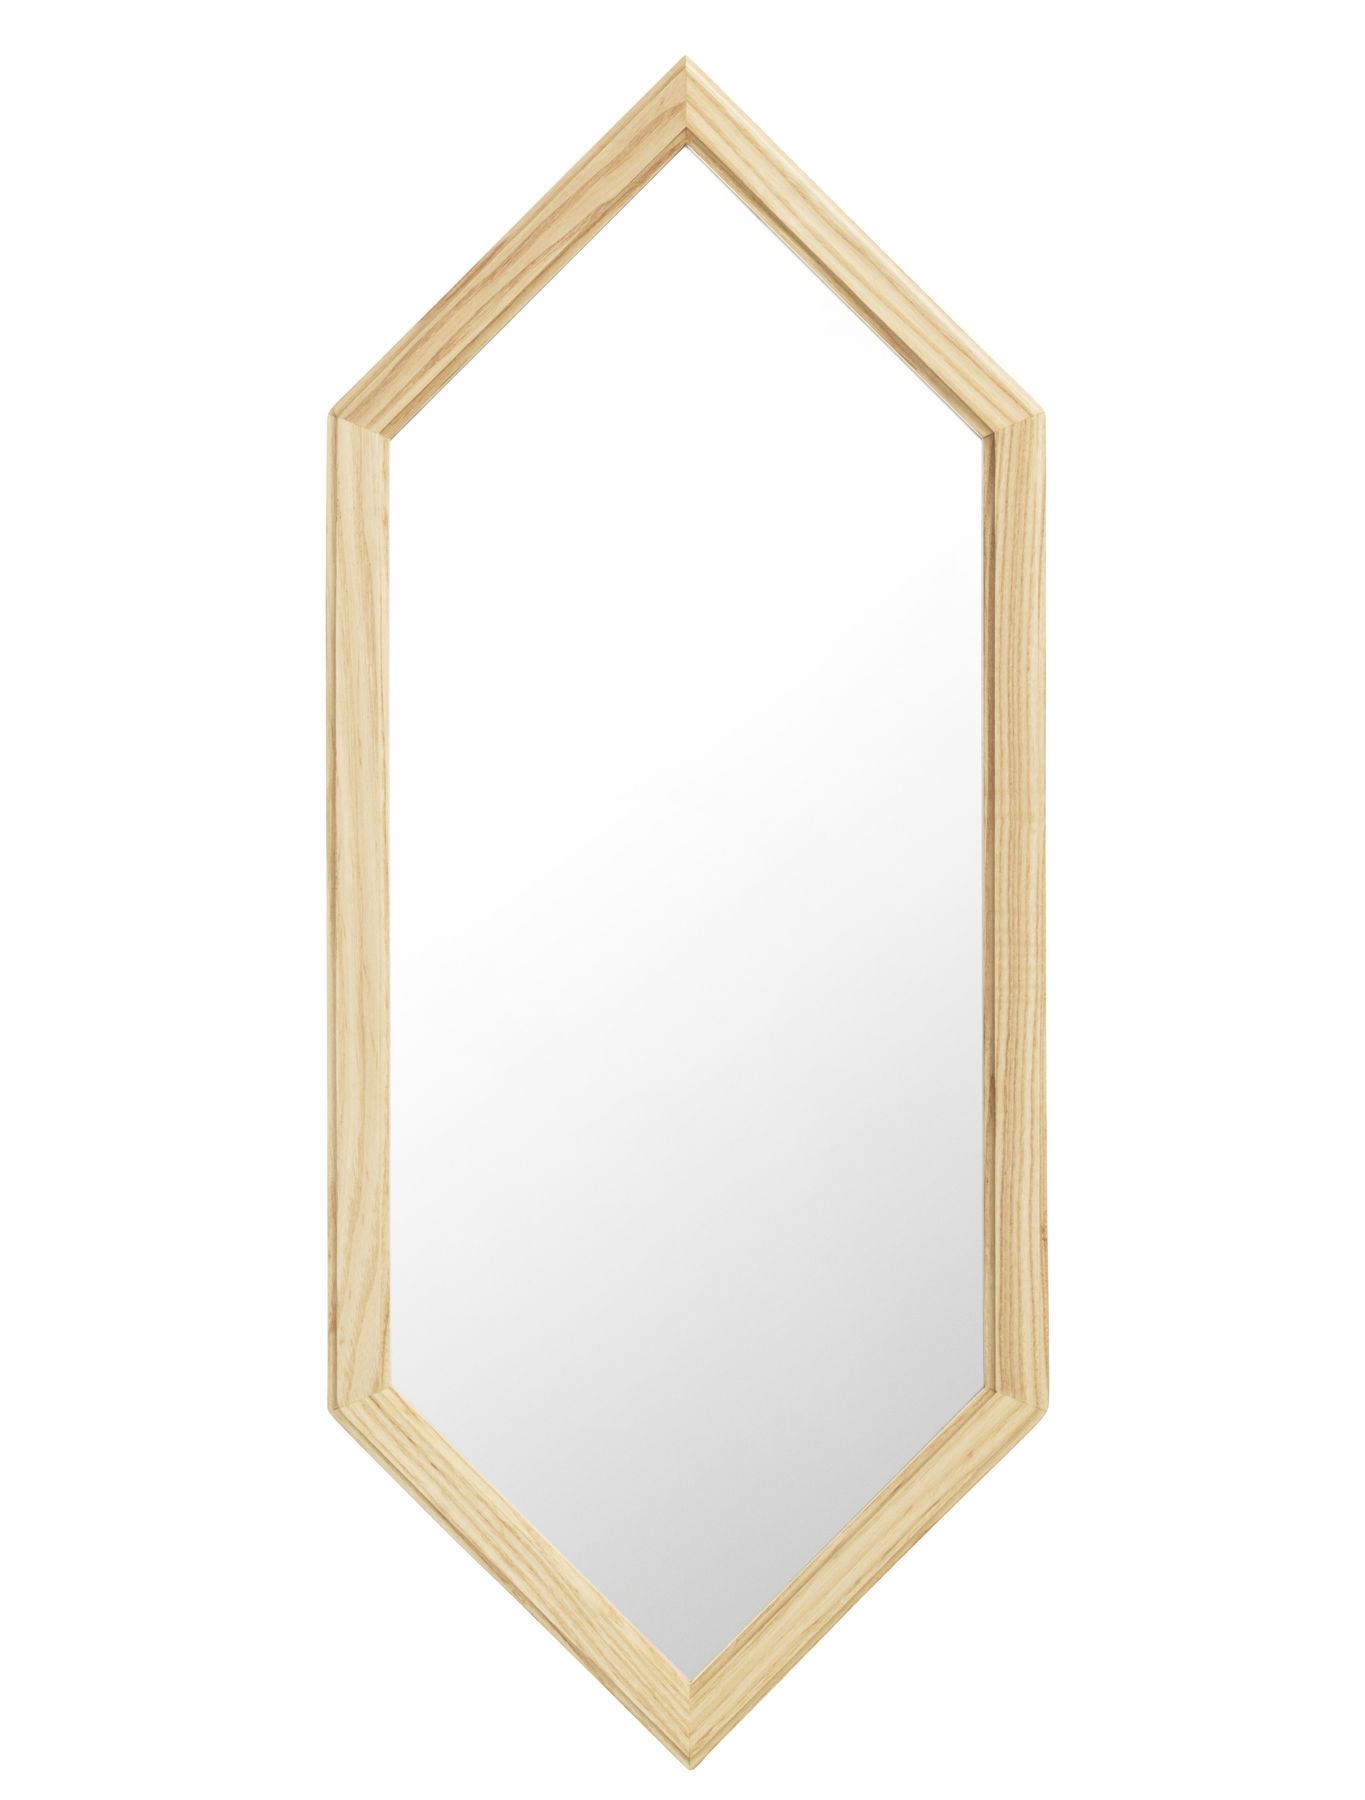 Decoration - Mirrors - Lust   Small Wall mirror - / L 29 x H 70 cm by Normann Copenhagen - Silver mirror / Wood - Glass, Natural oak